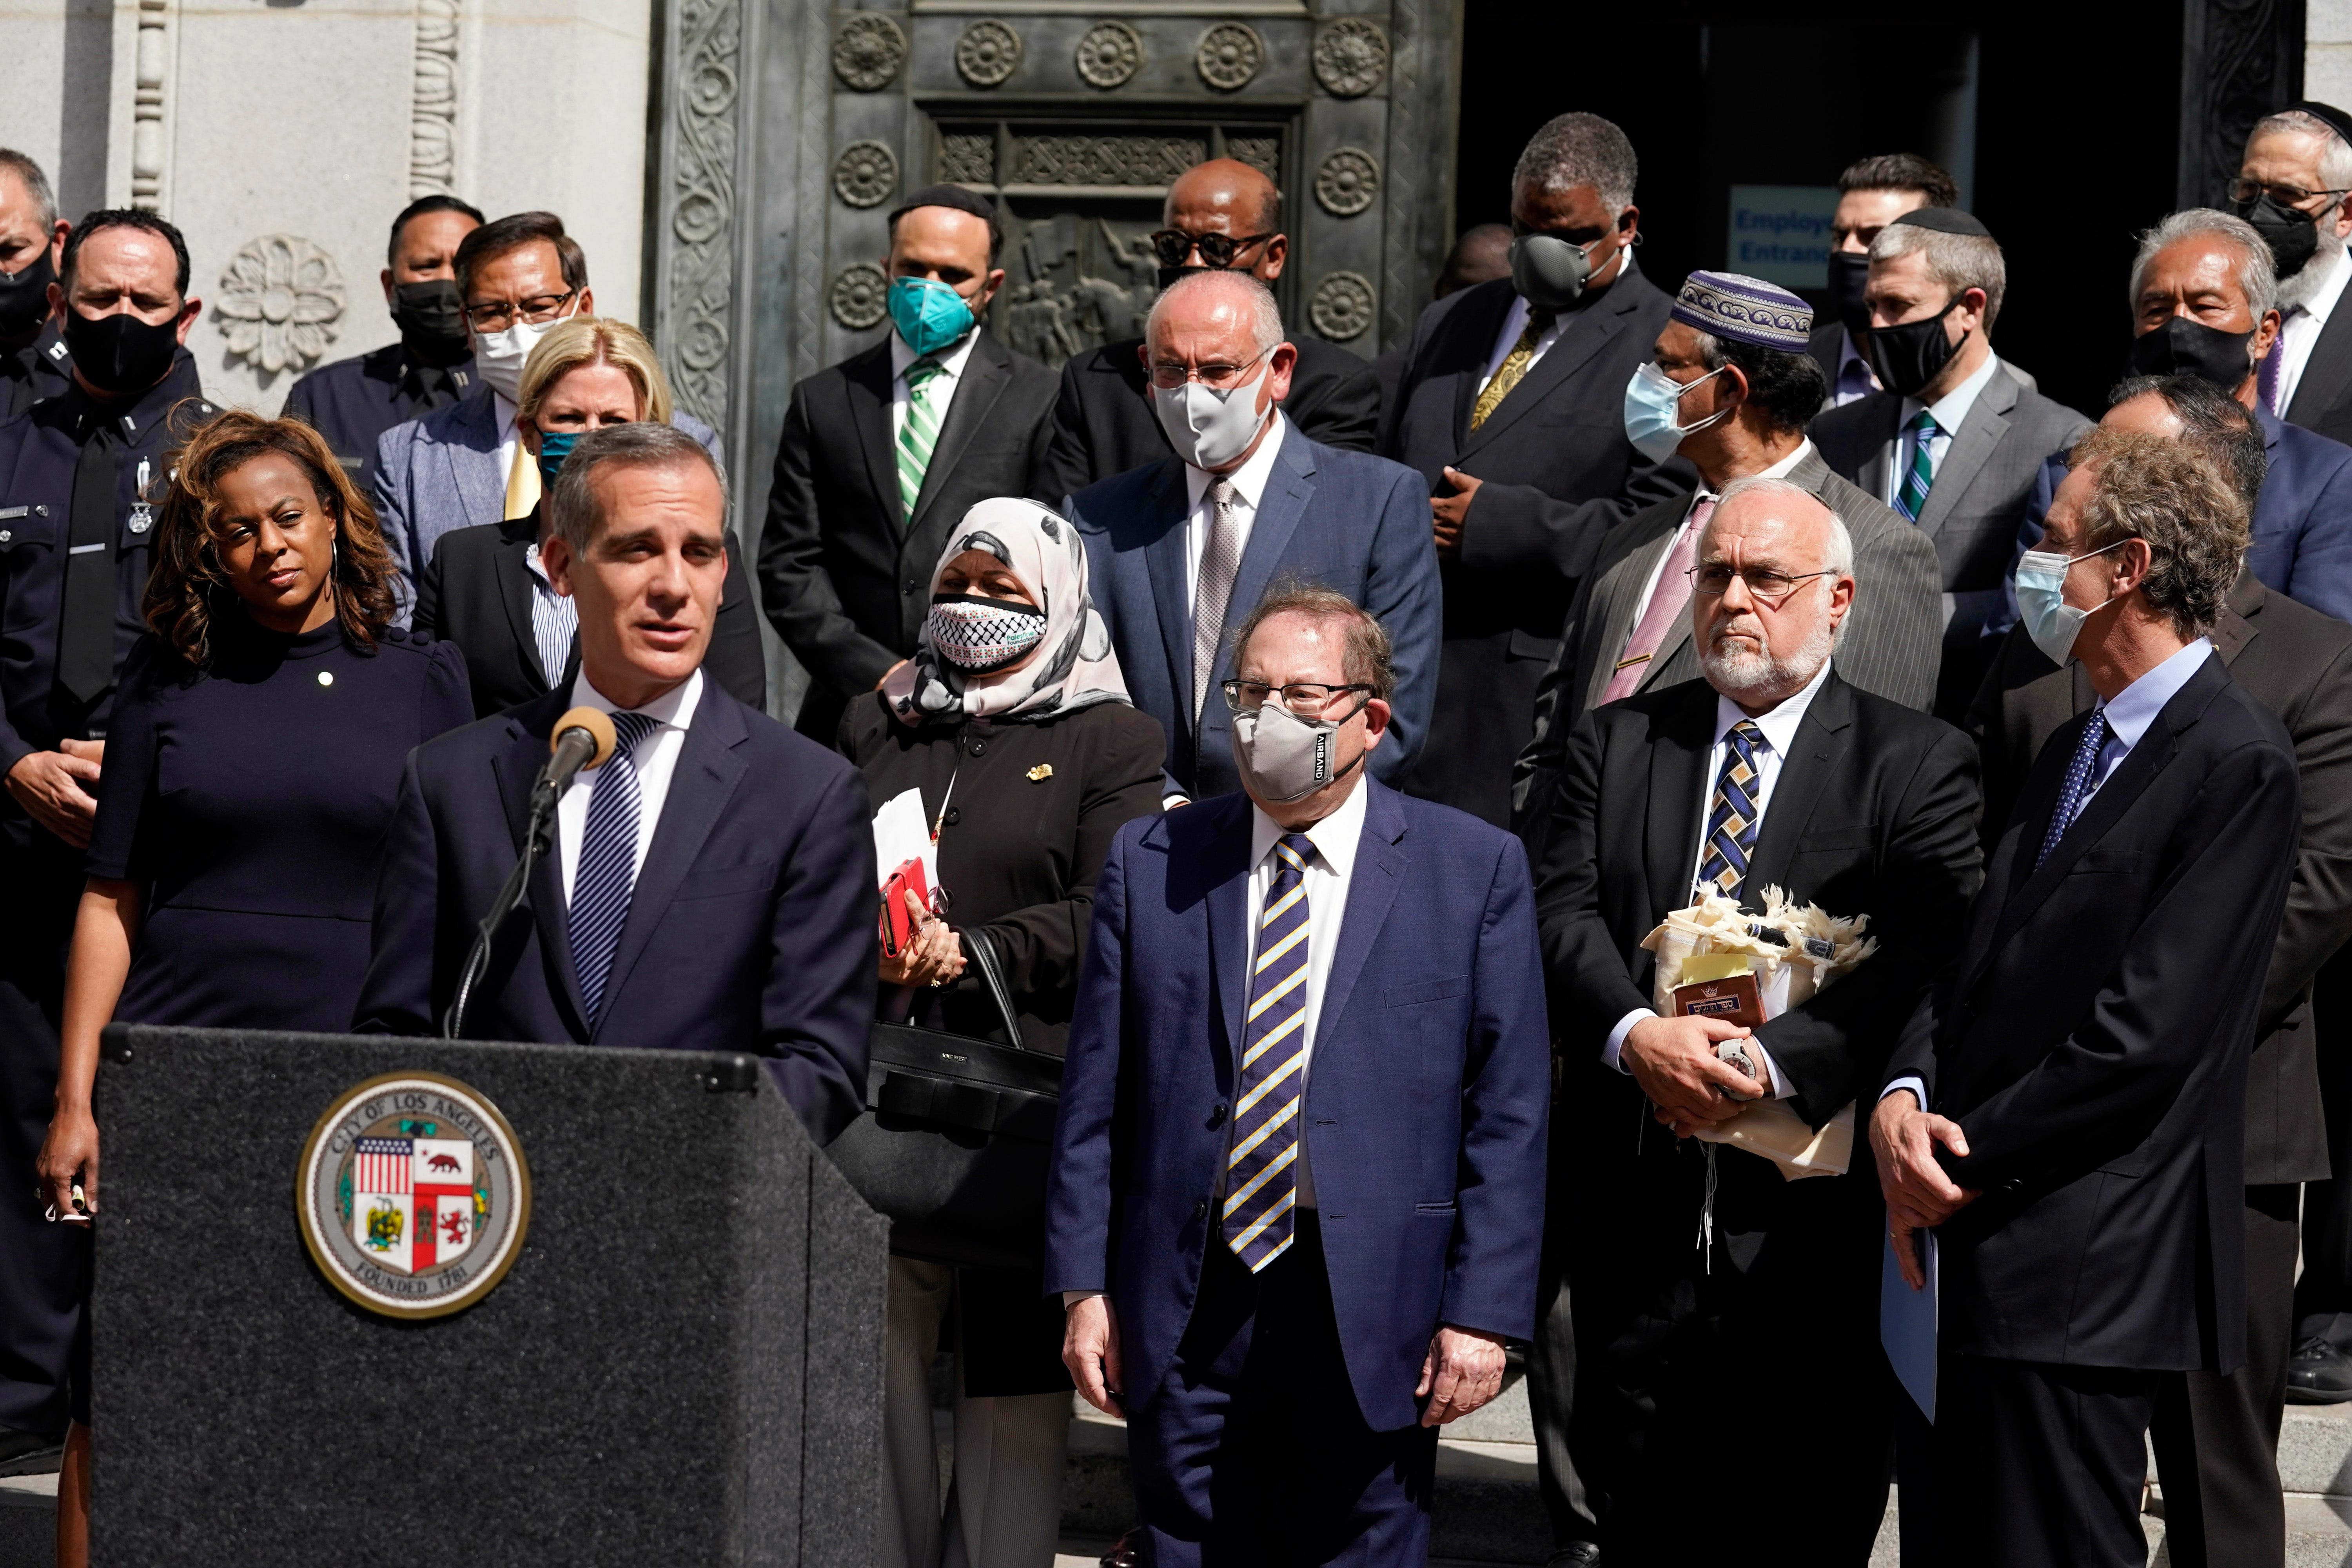 Chilling images will not be tolerated : LAPD investigating separate incidents as possible anti-Semitic hate crimes